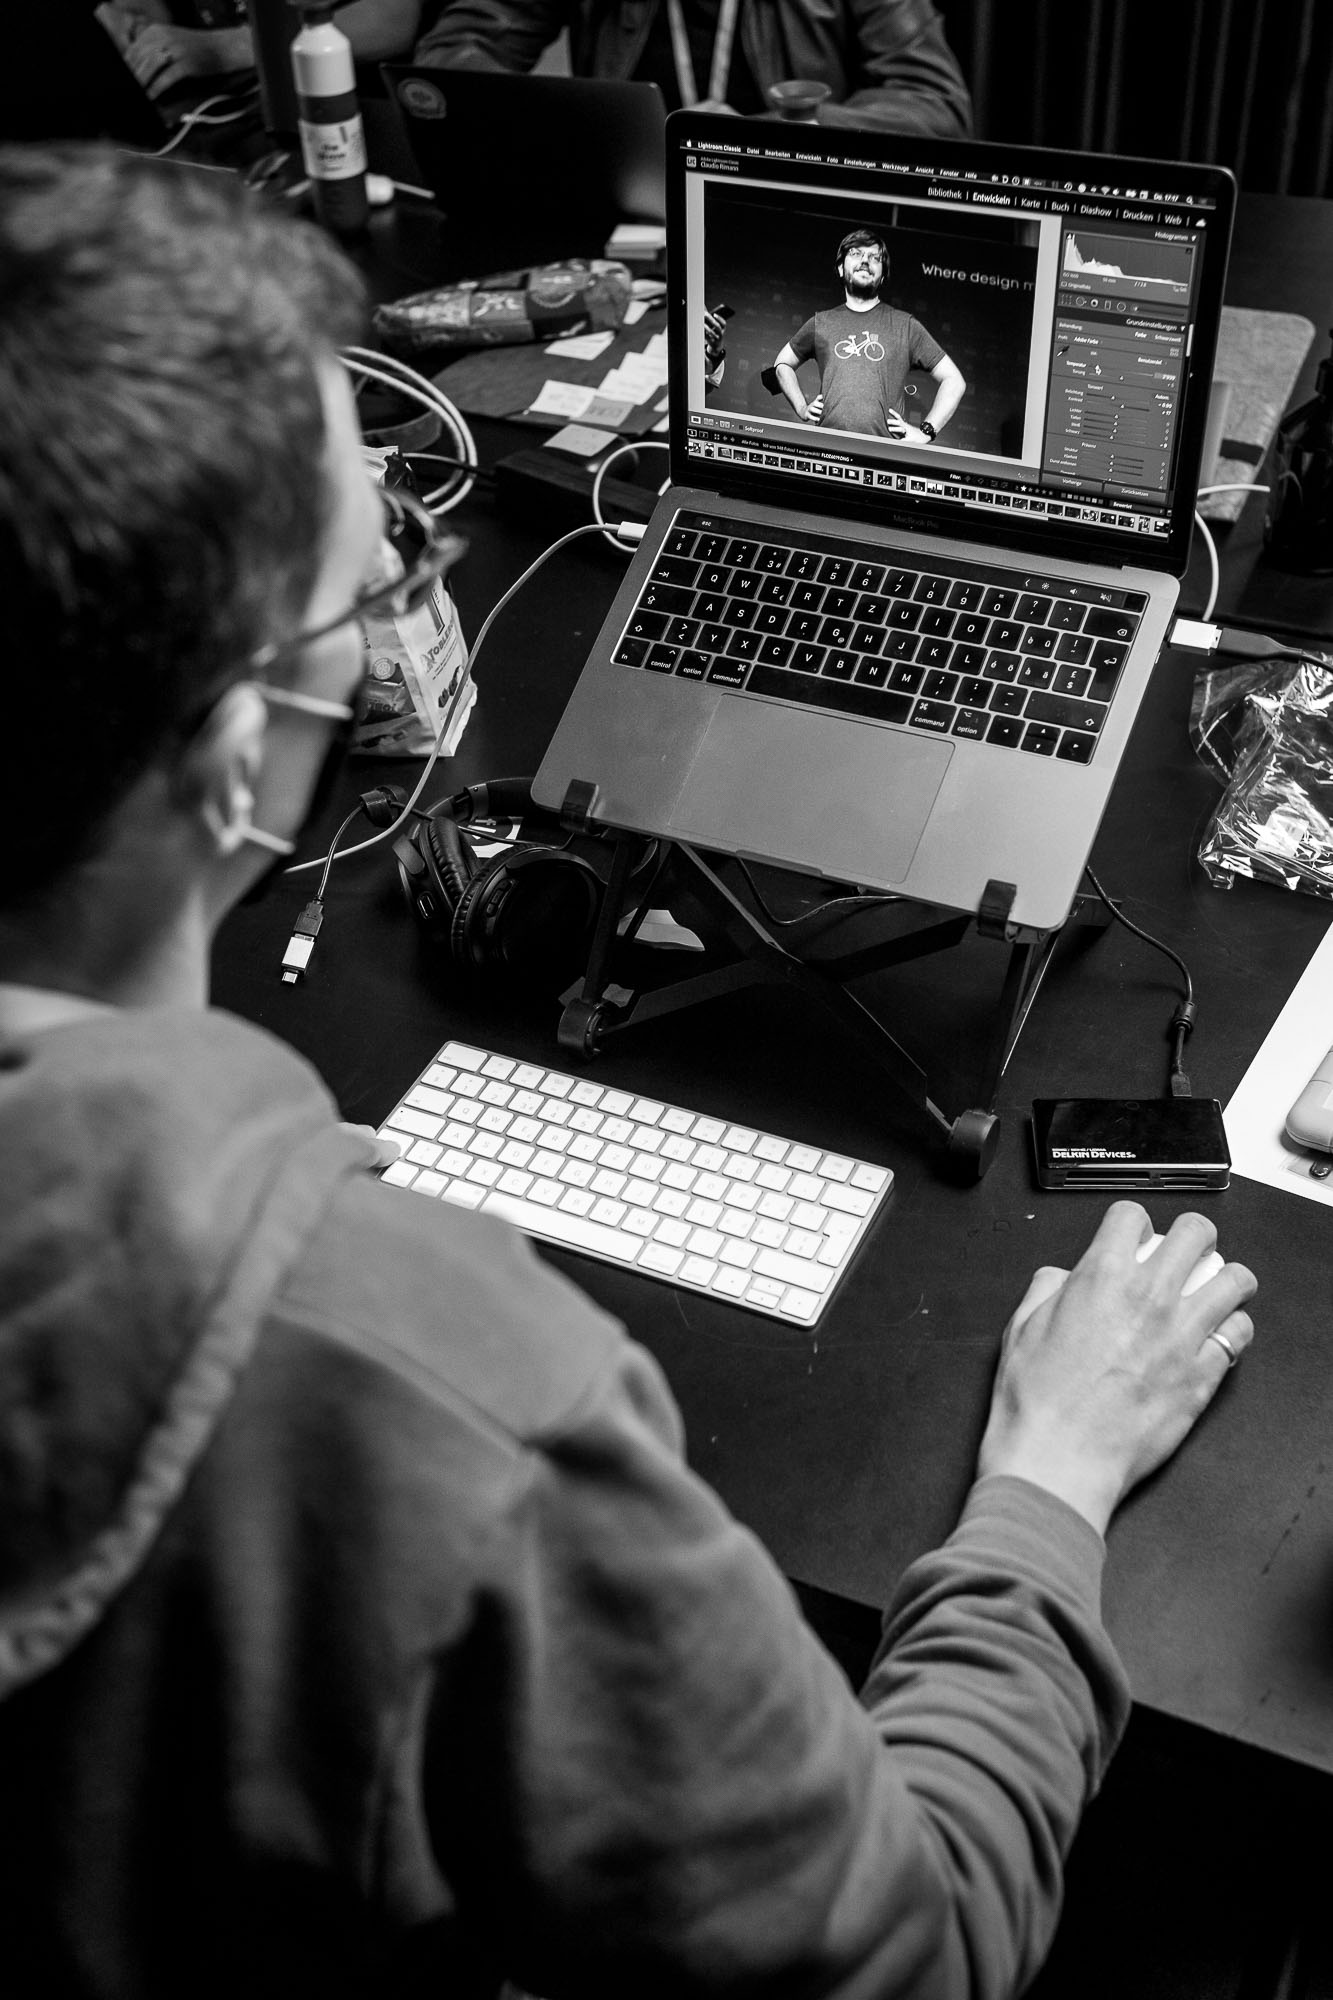 Claudio Rimann hard at work, editing all the images for Front Conference Zürich 2021